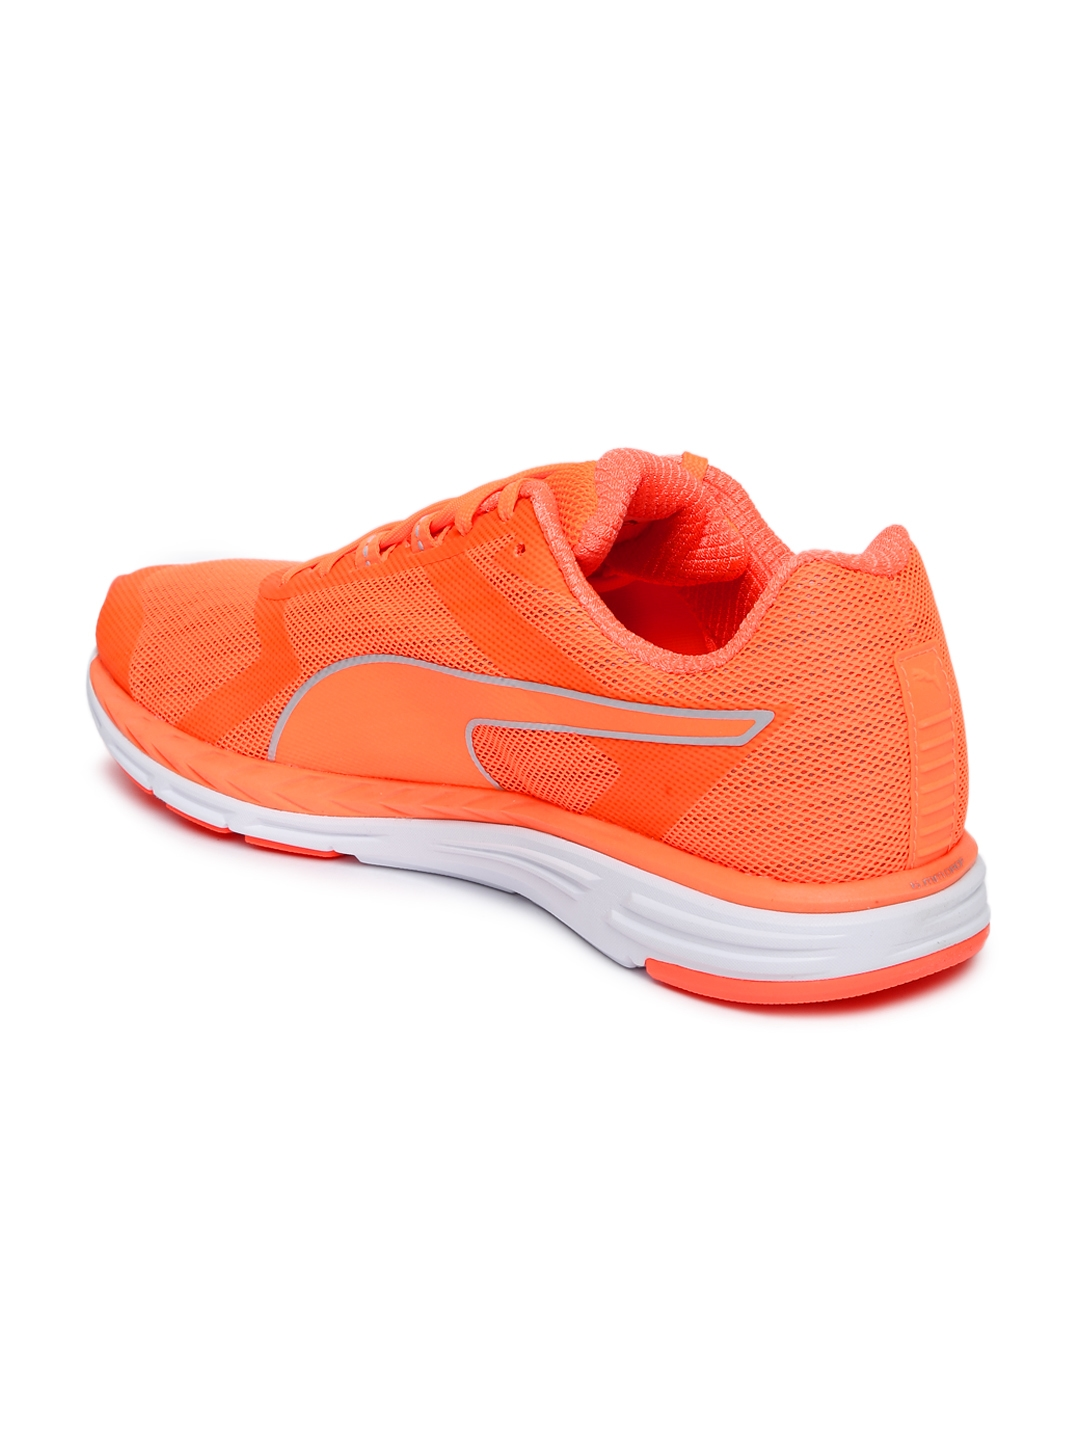 Buy Puma Men Orange Speed 500 Ignite Nightcat Running Shoes - Sports ... 7a0af8565